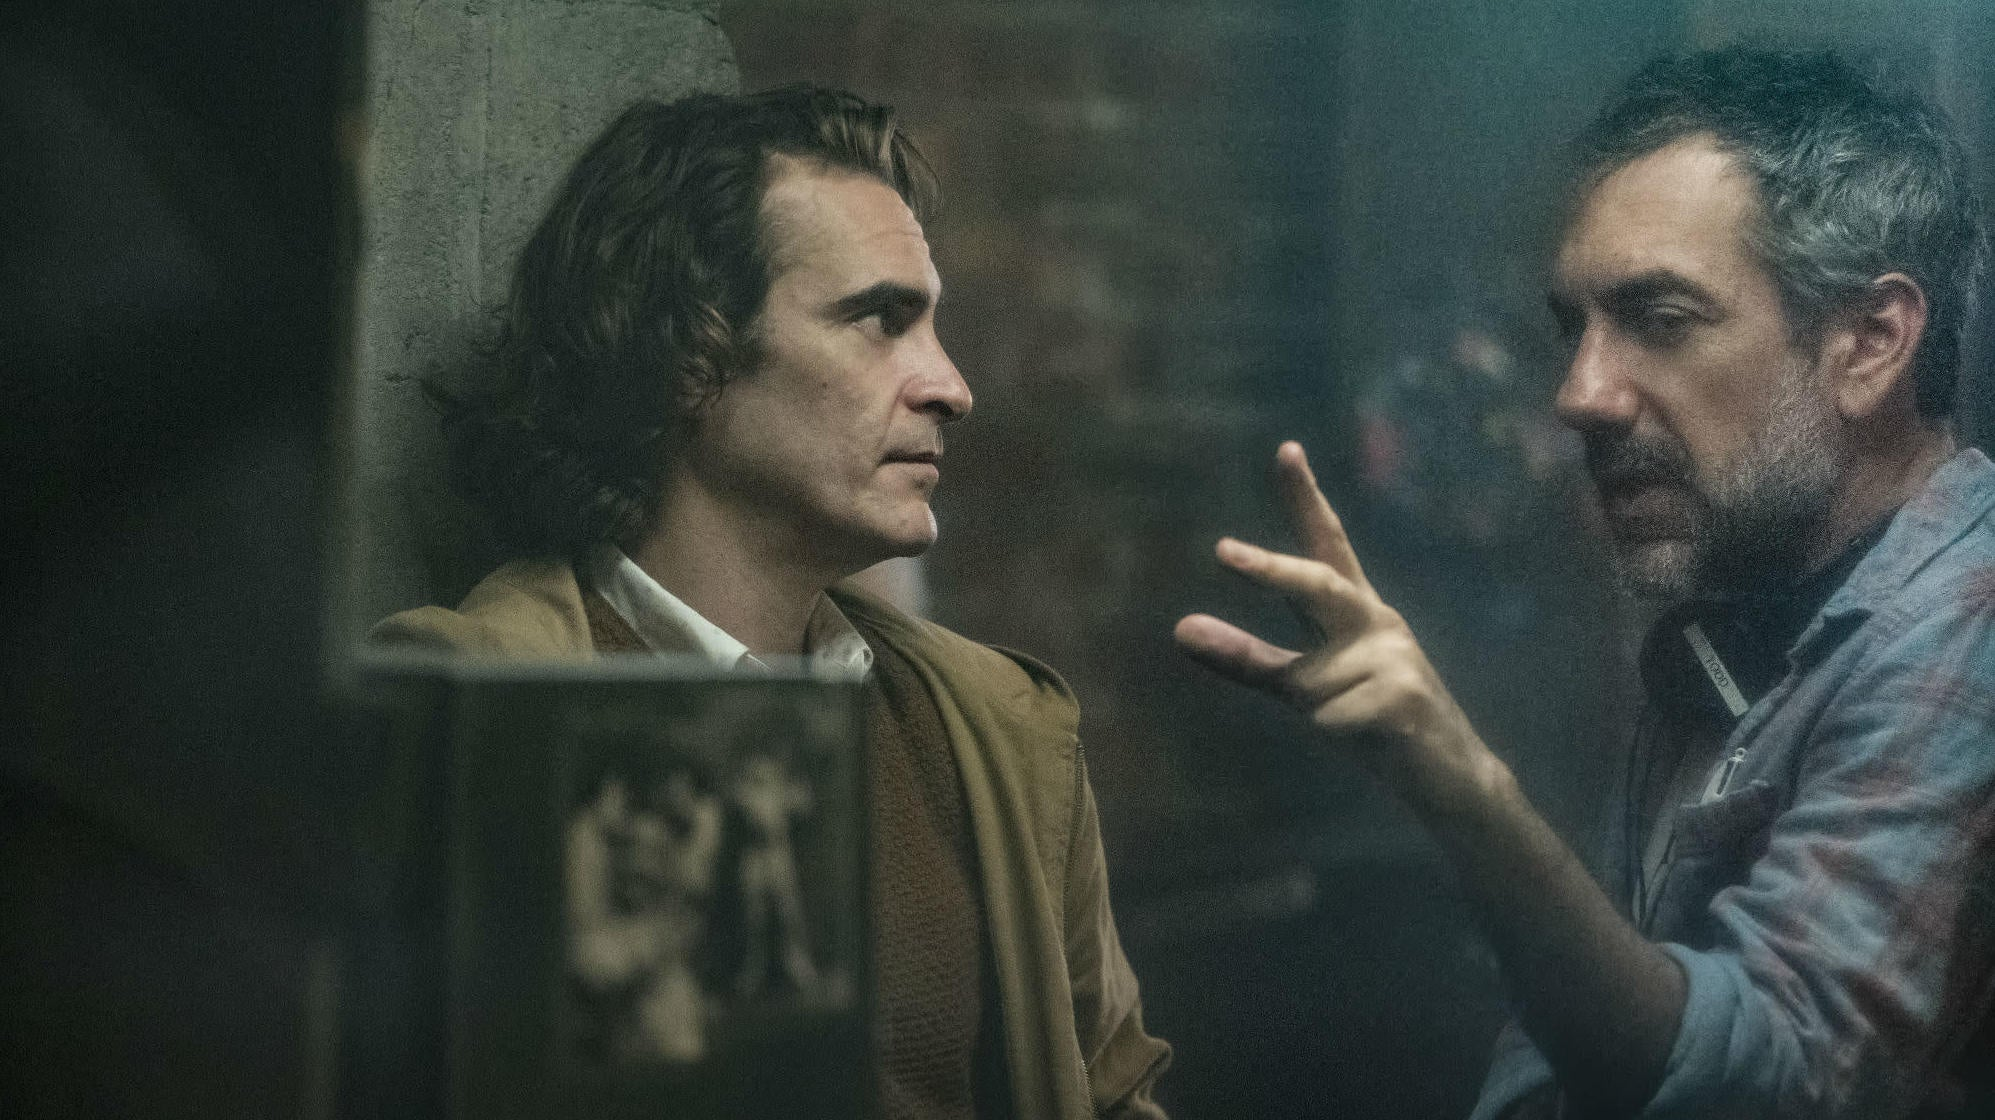 A Month After Joker, Joaquin Phoenix And Todd Phillips Reflect On Controversies, Sequels And More